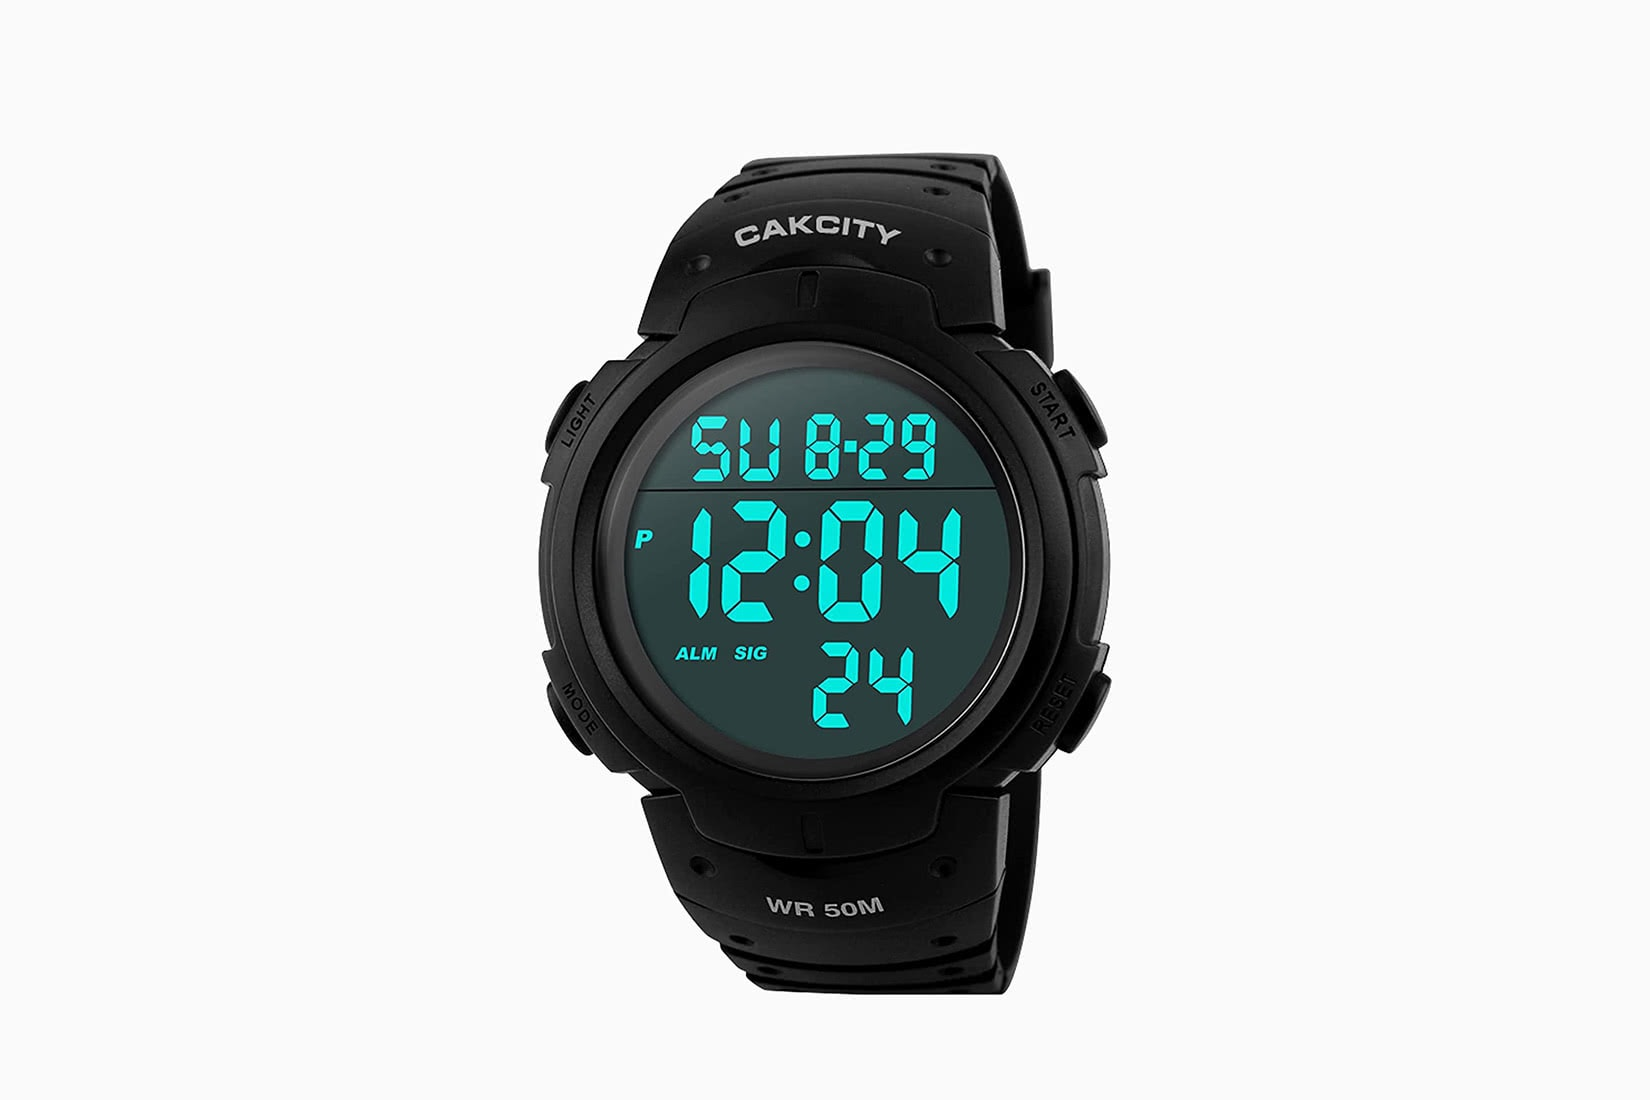 best men watches cakcity digital sports review - Luxe Digital